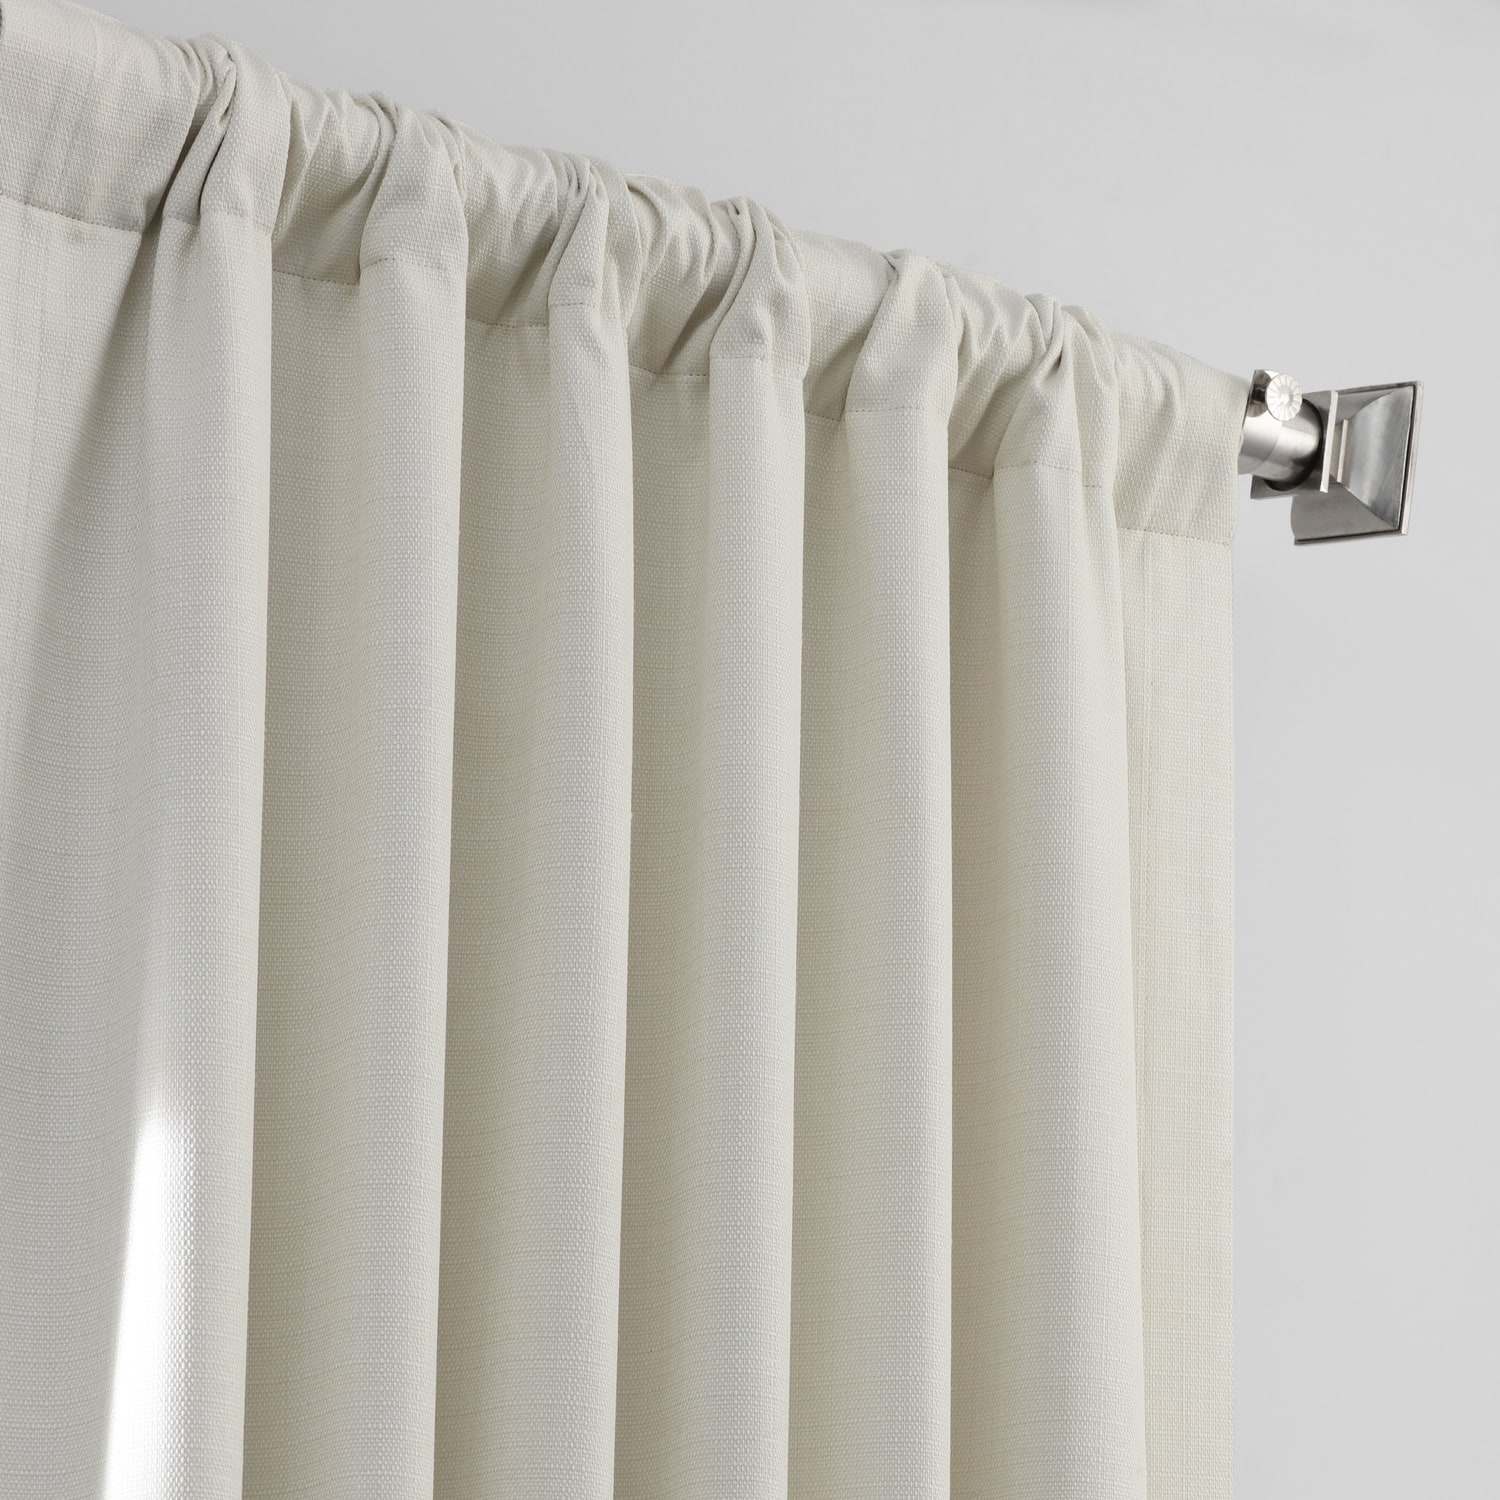 Ecru Italian Textured Faux Linen Hotel Blackout Curtain